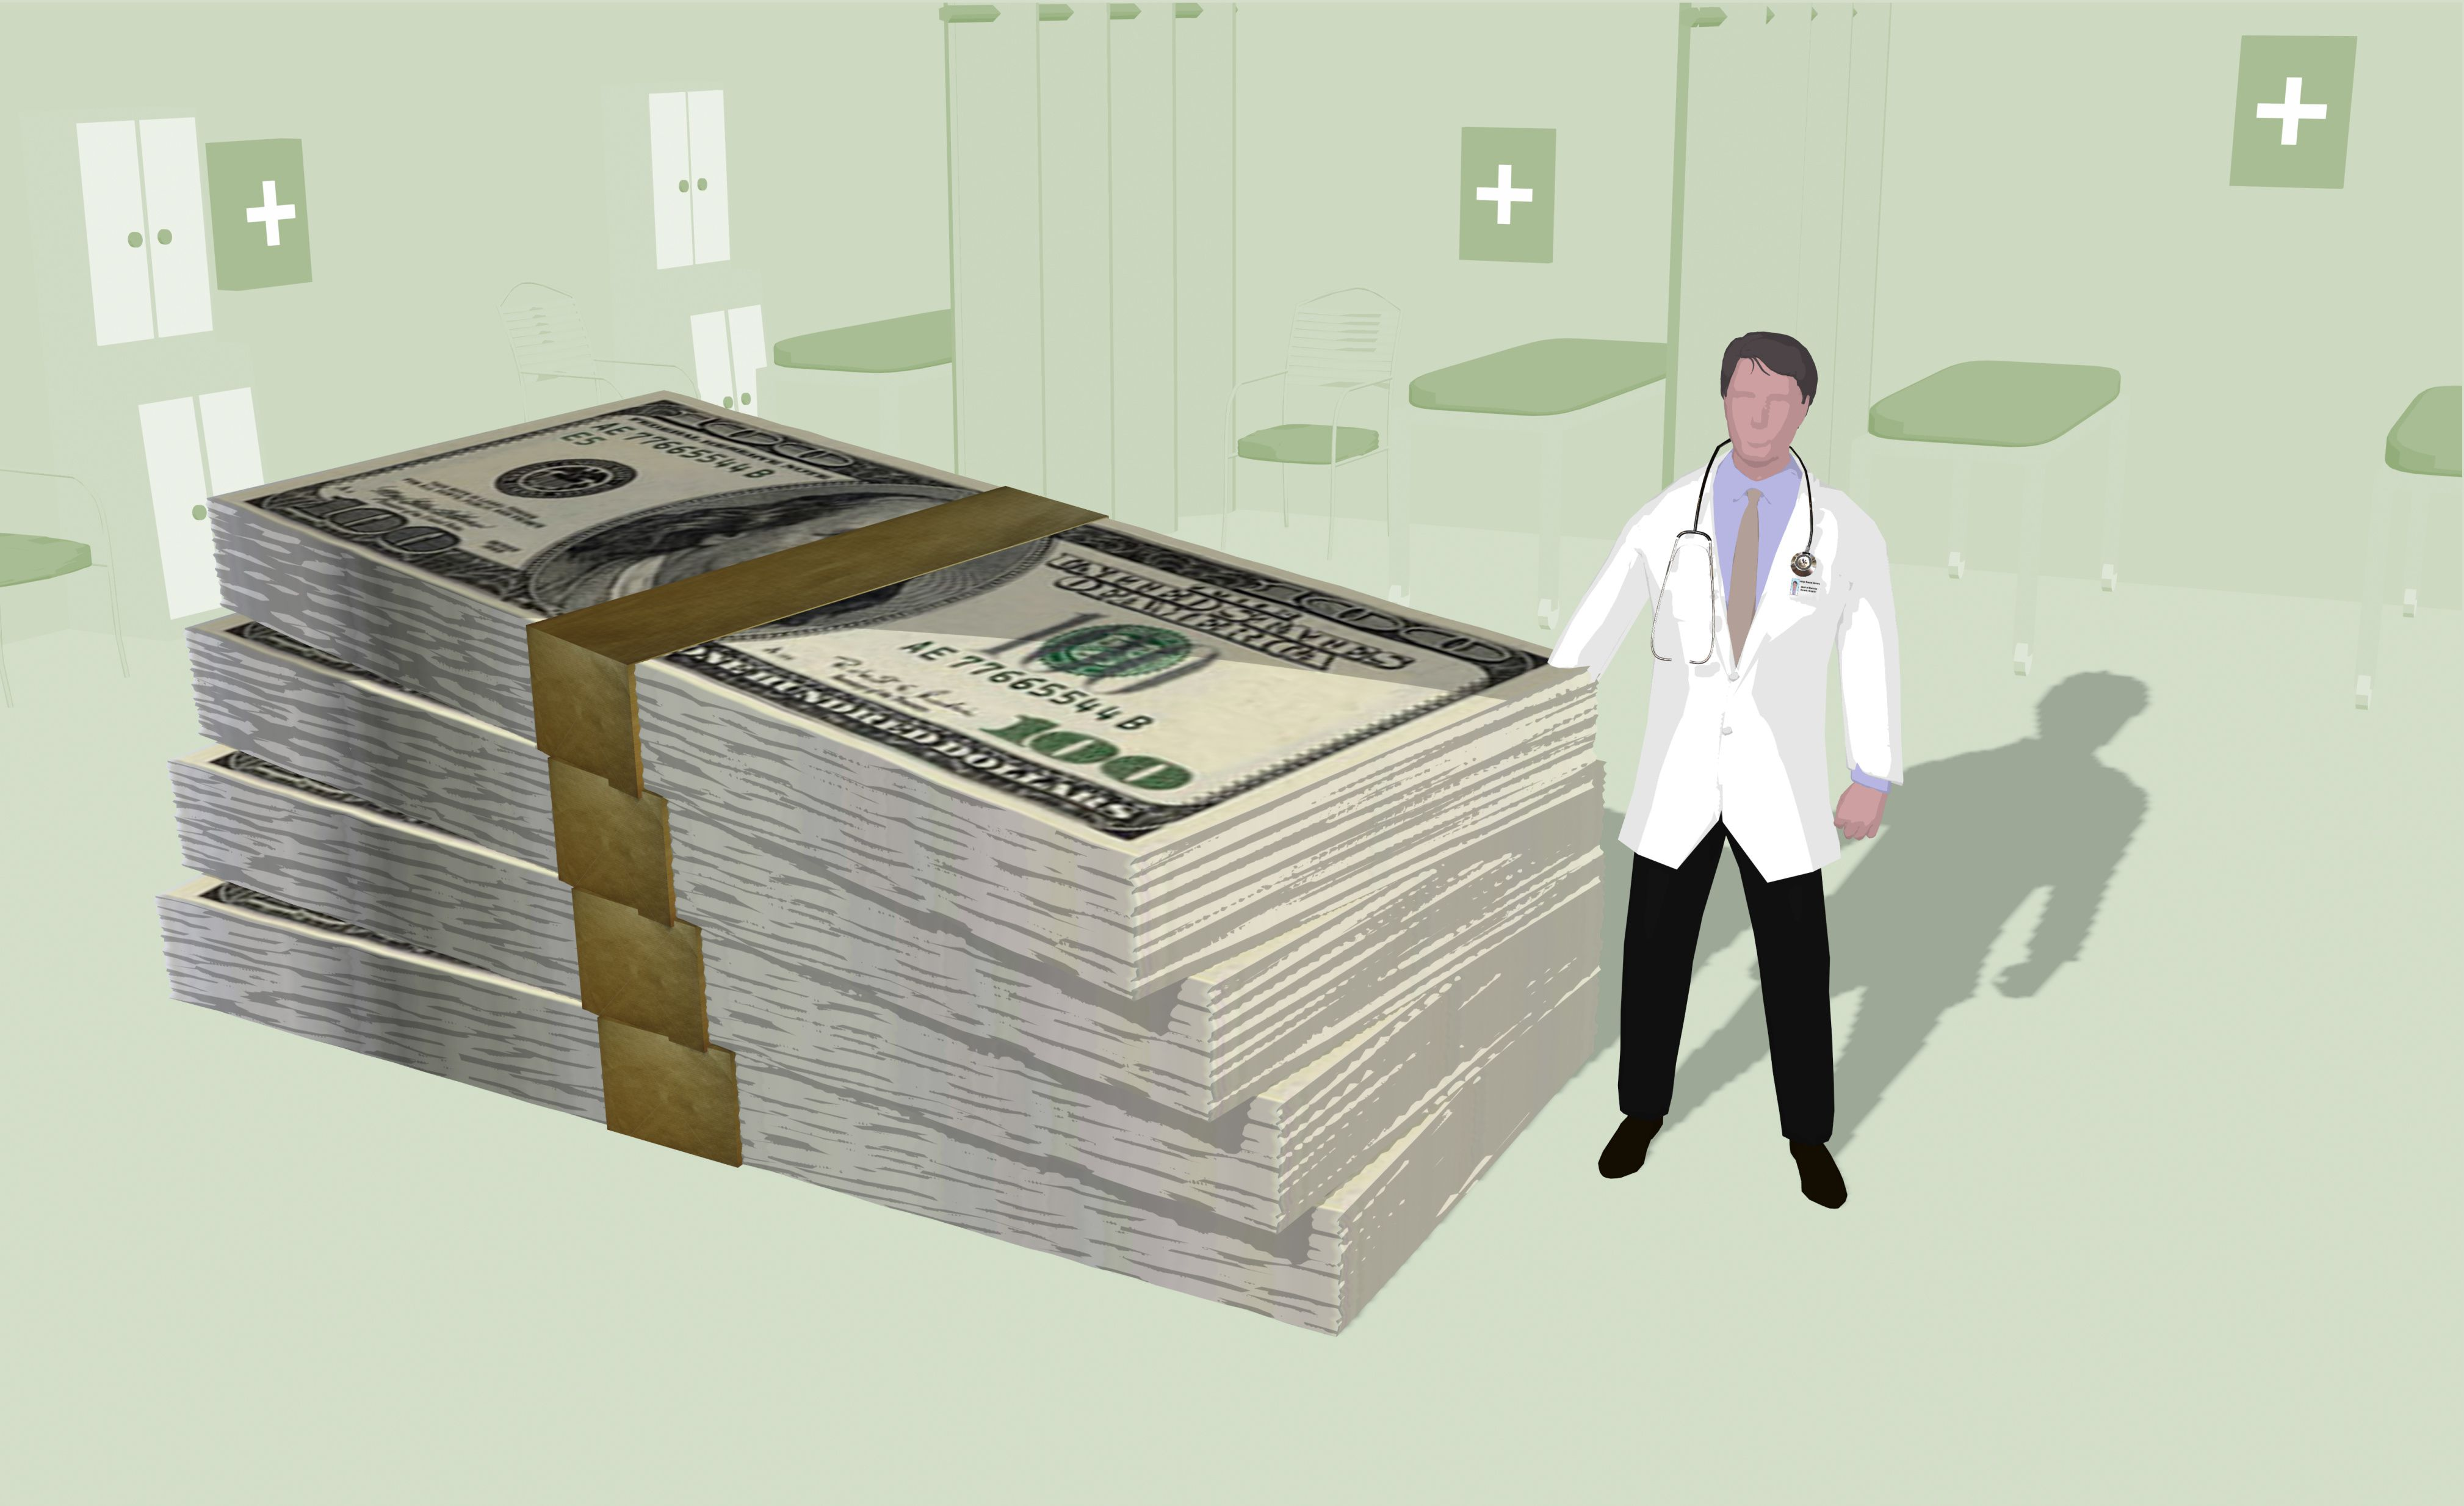 Find Out How Much Obamacare Cost and Why It Doesn't Add to the Debt